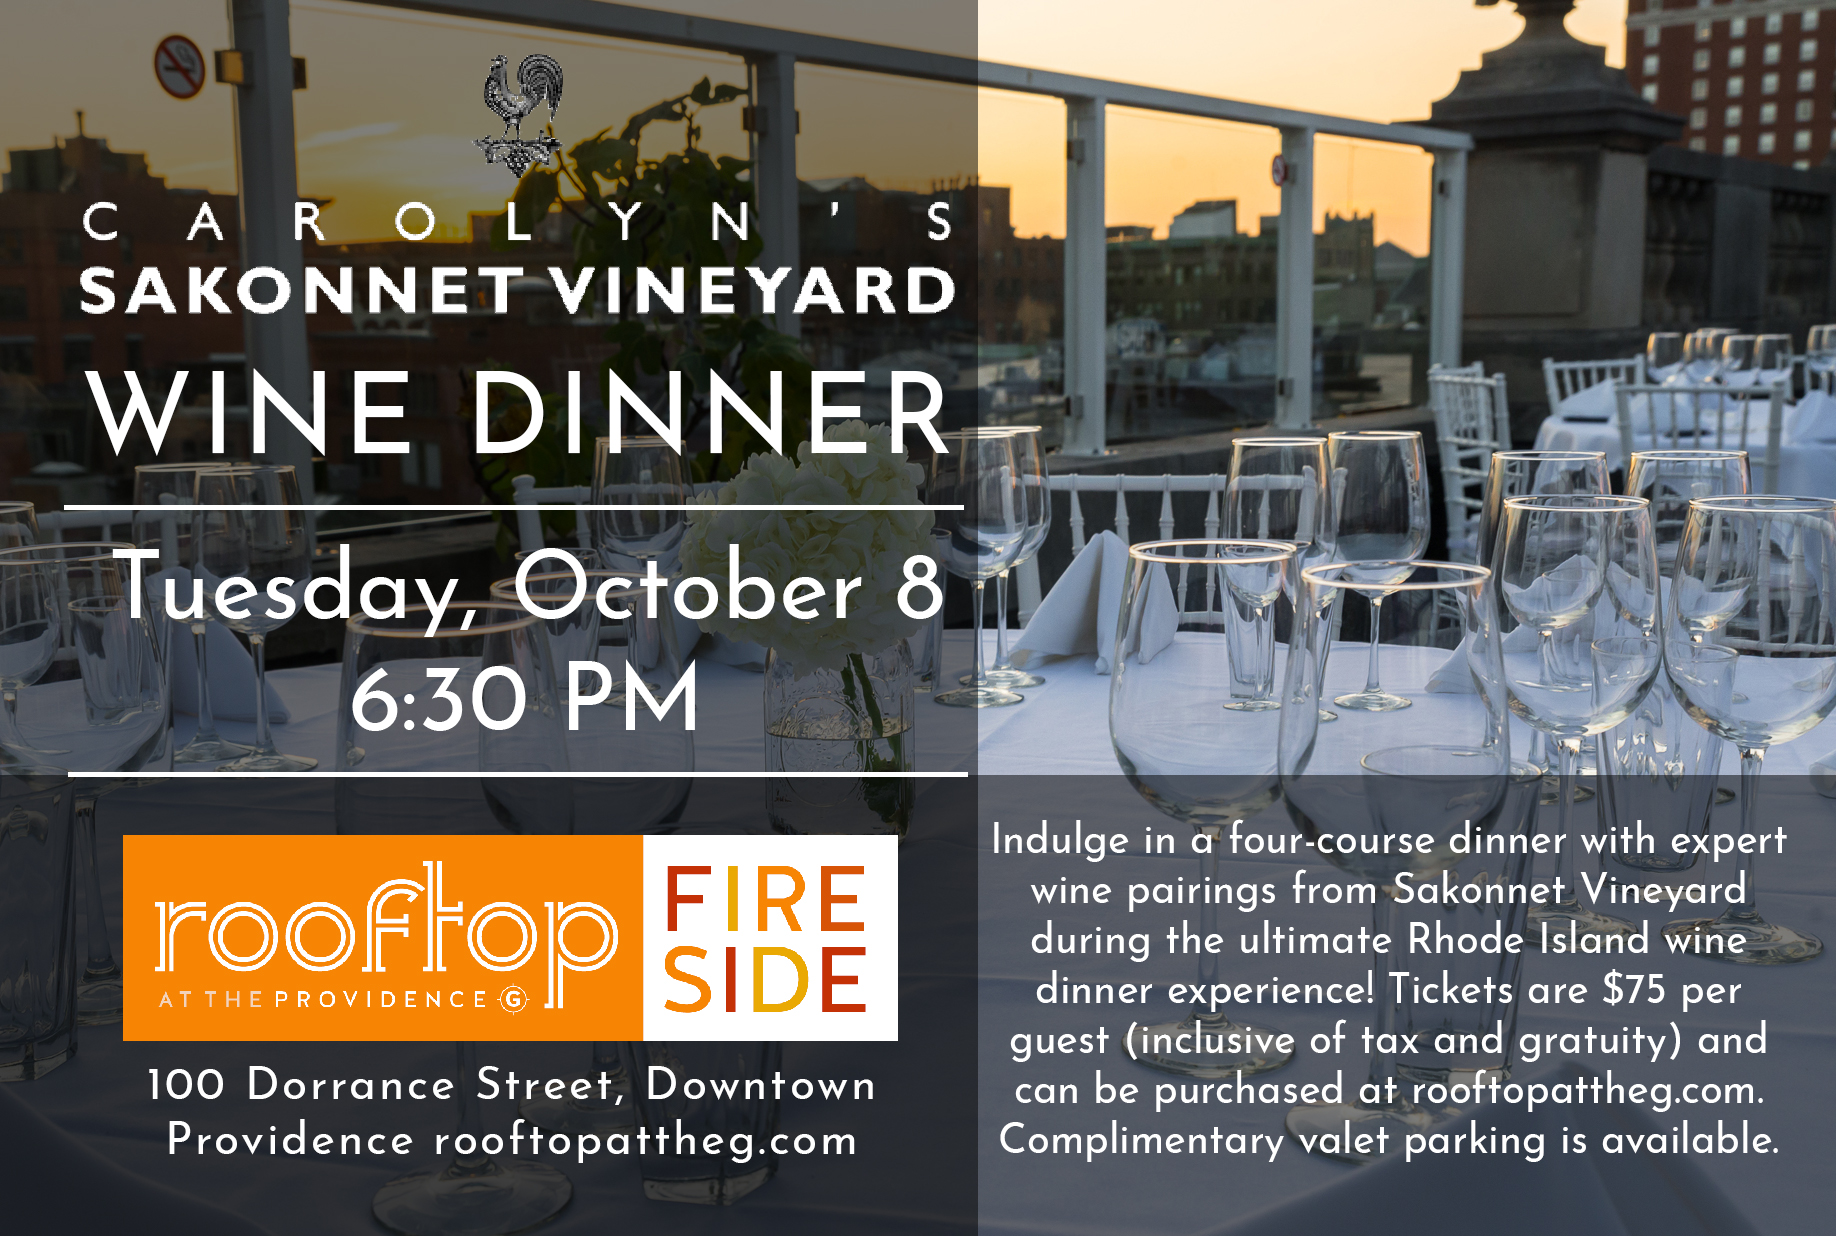 rooftop-wine-dinner-september.jpg